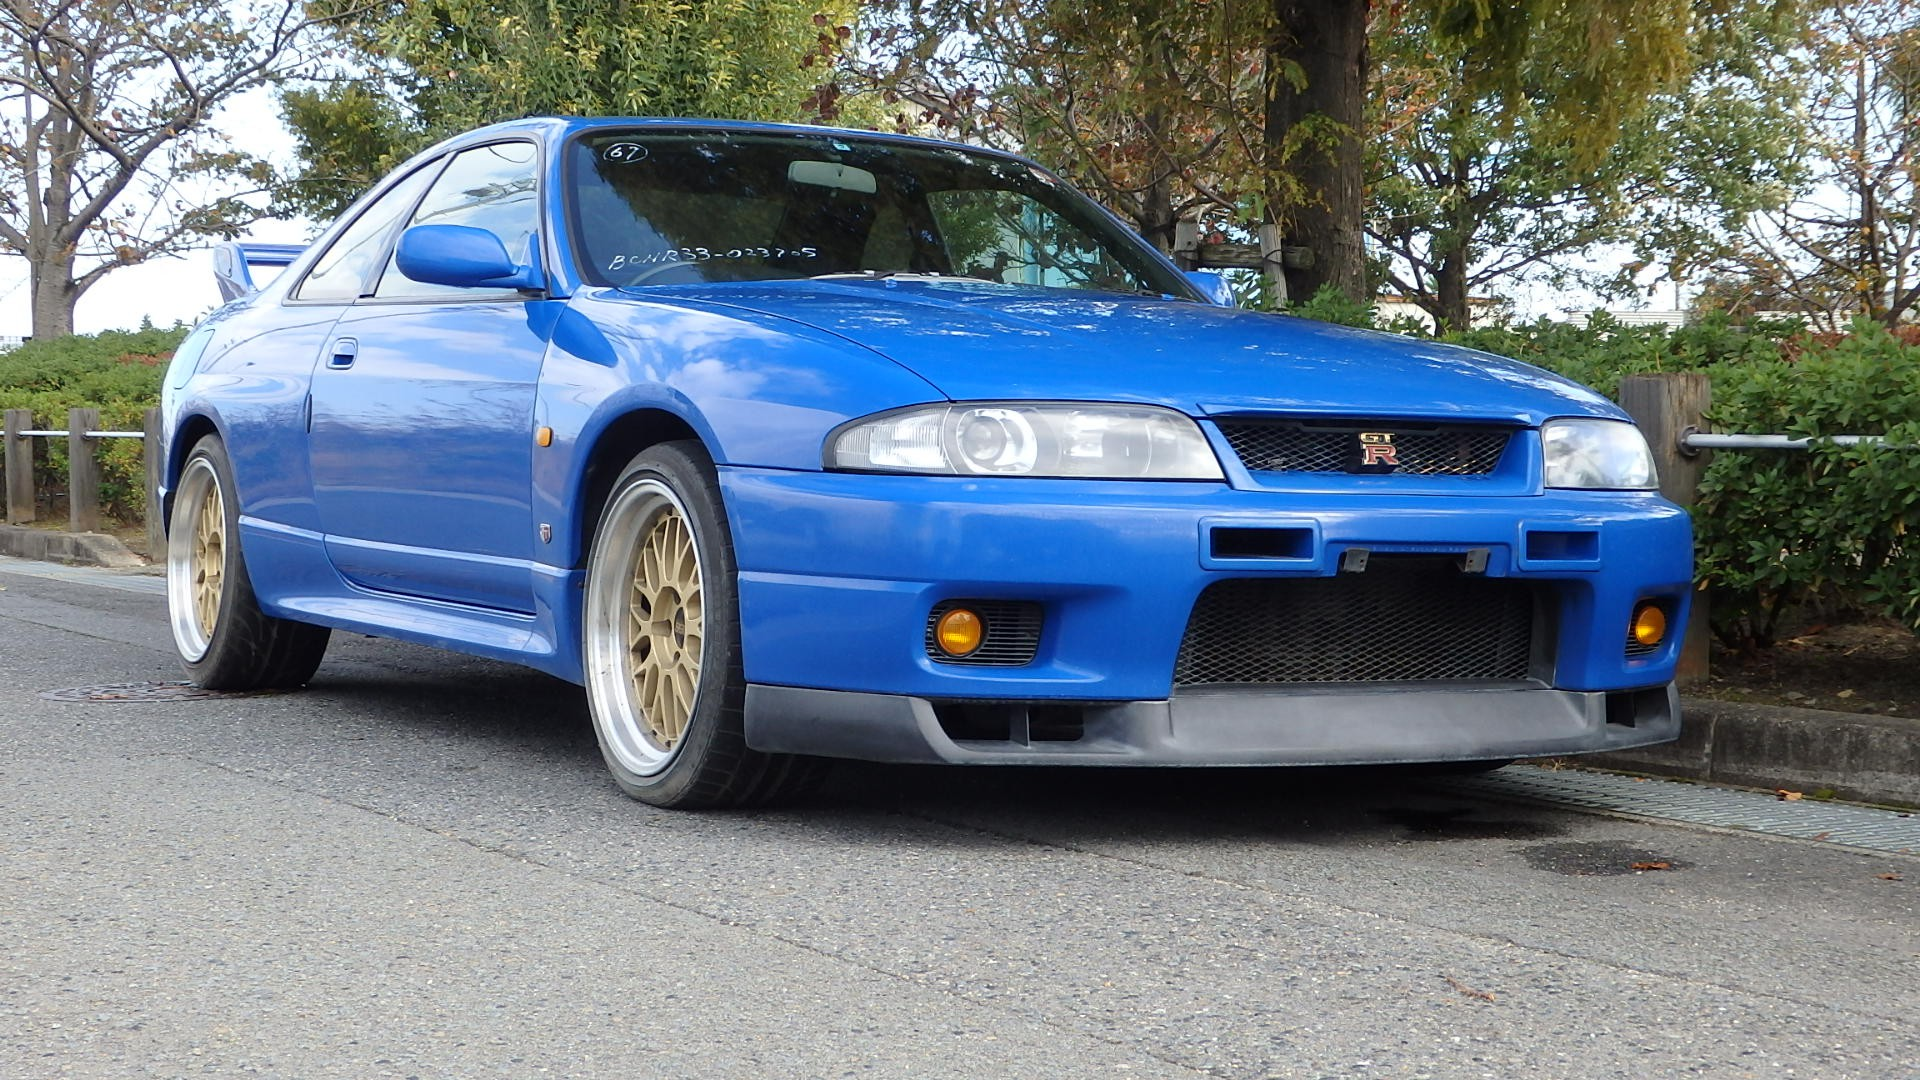 Le Mans Edition R33 Skyline Gtr For Sale Japan Usa Canada Uk